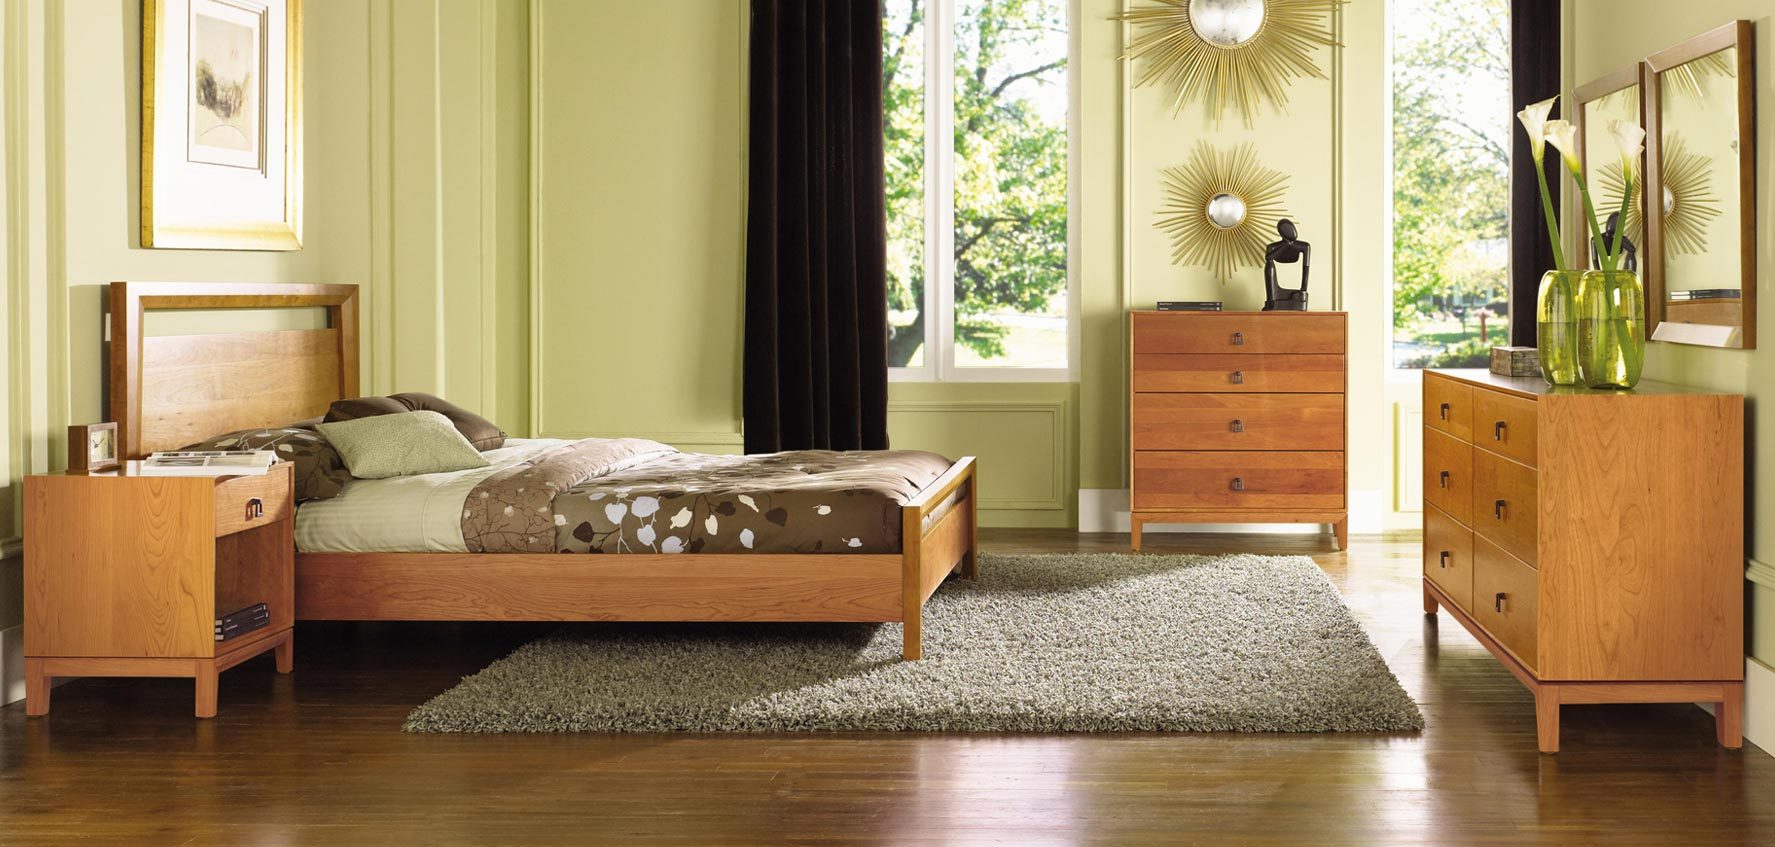 Mansfield Furniture by Copeland. Mansfield Bedroom Furniture by Copeland   Vermont Woods Studios